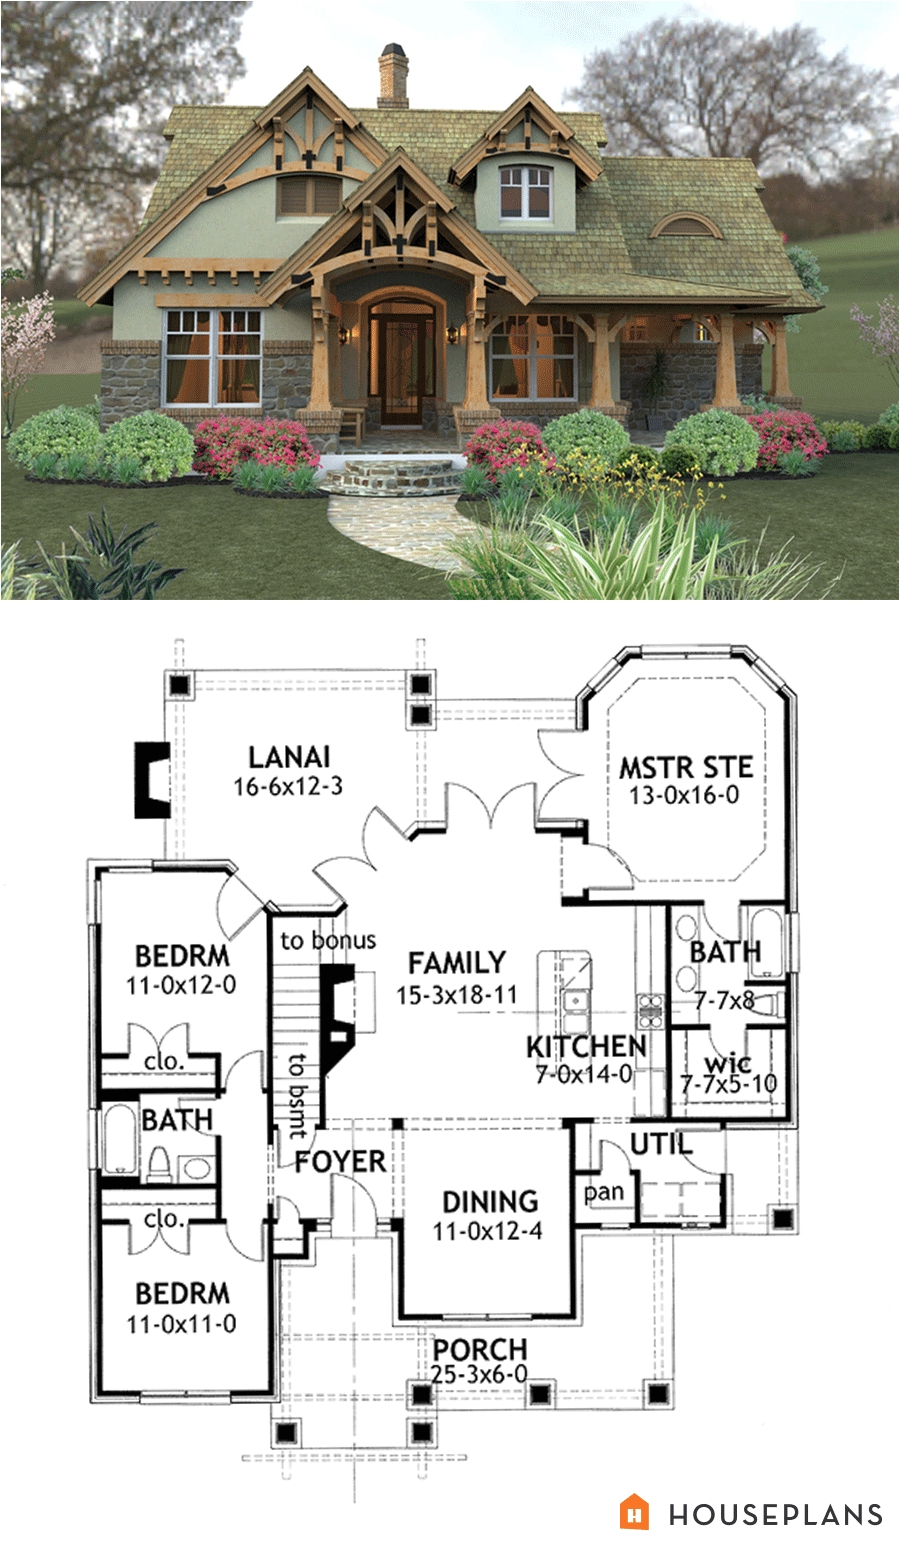 craftsman mountain house plan and elevation 1400sft houseplans 120 174